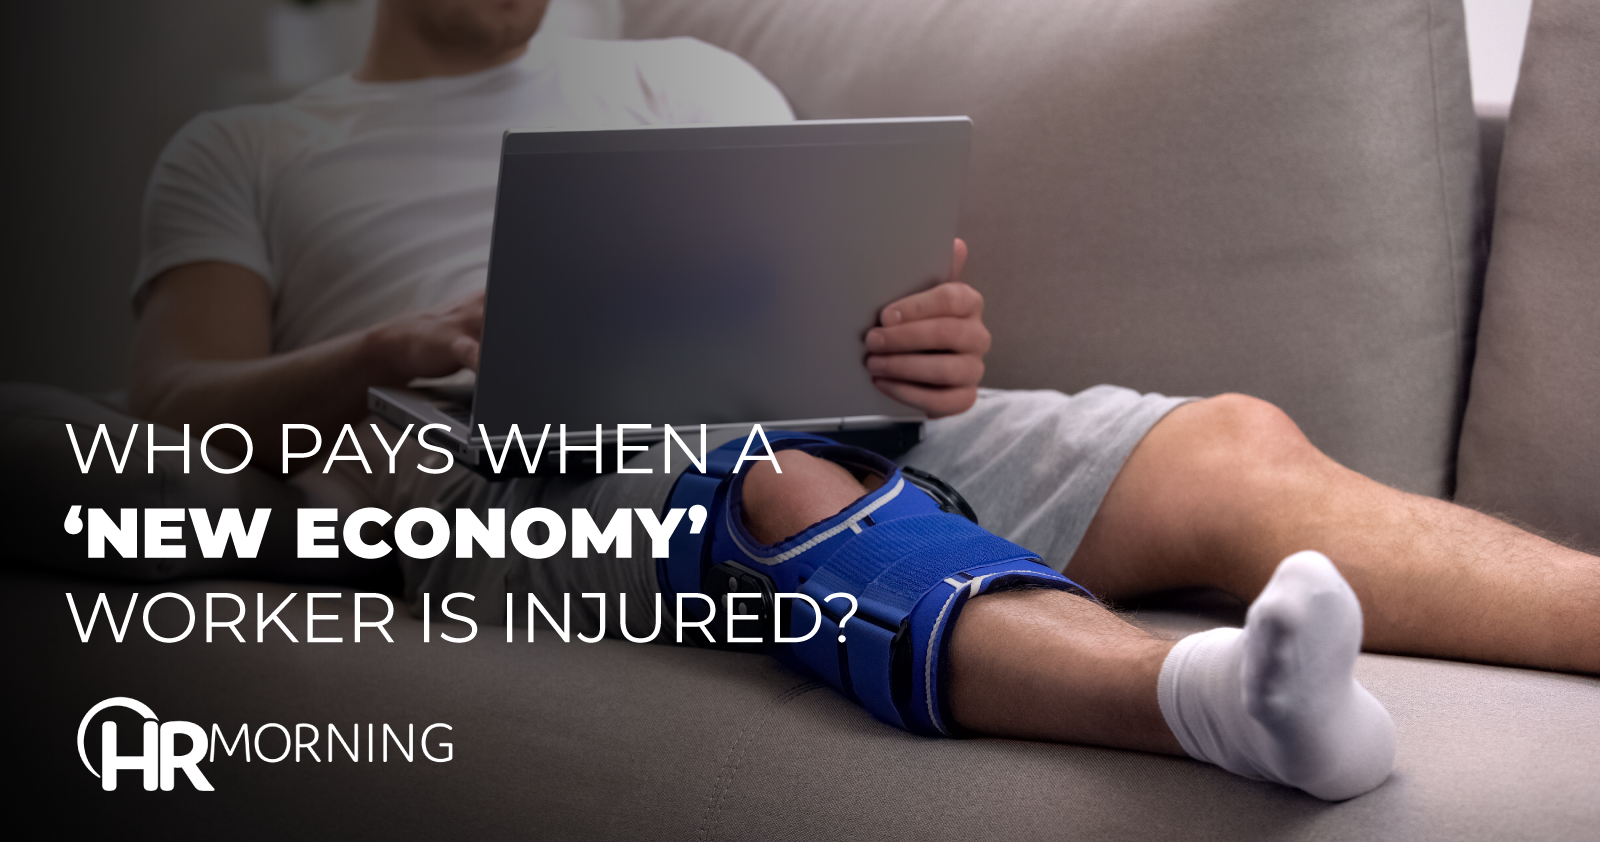 who pays when a new economy worker is injured